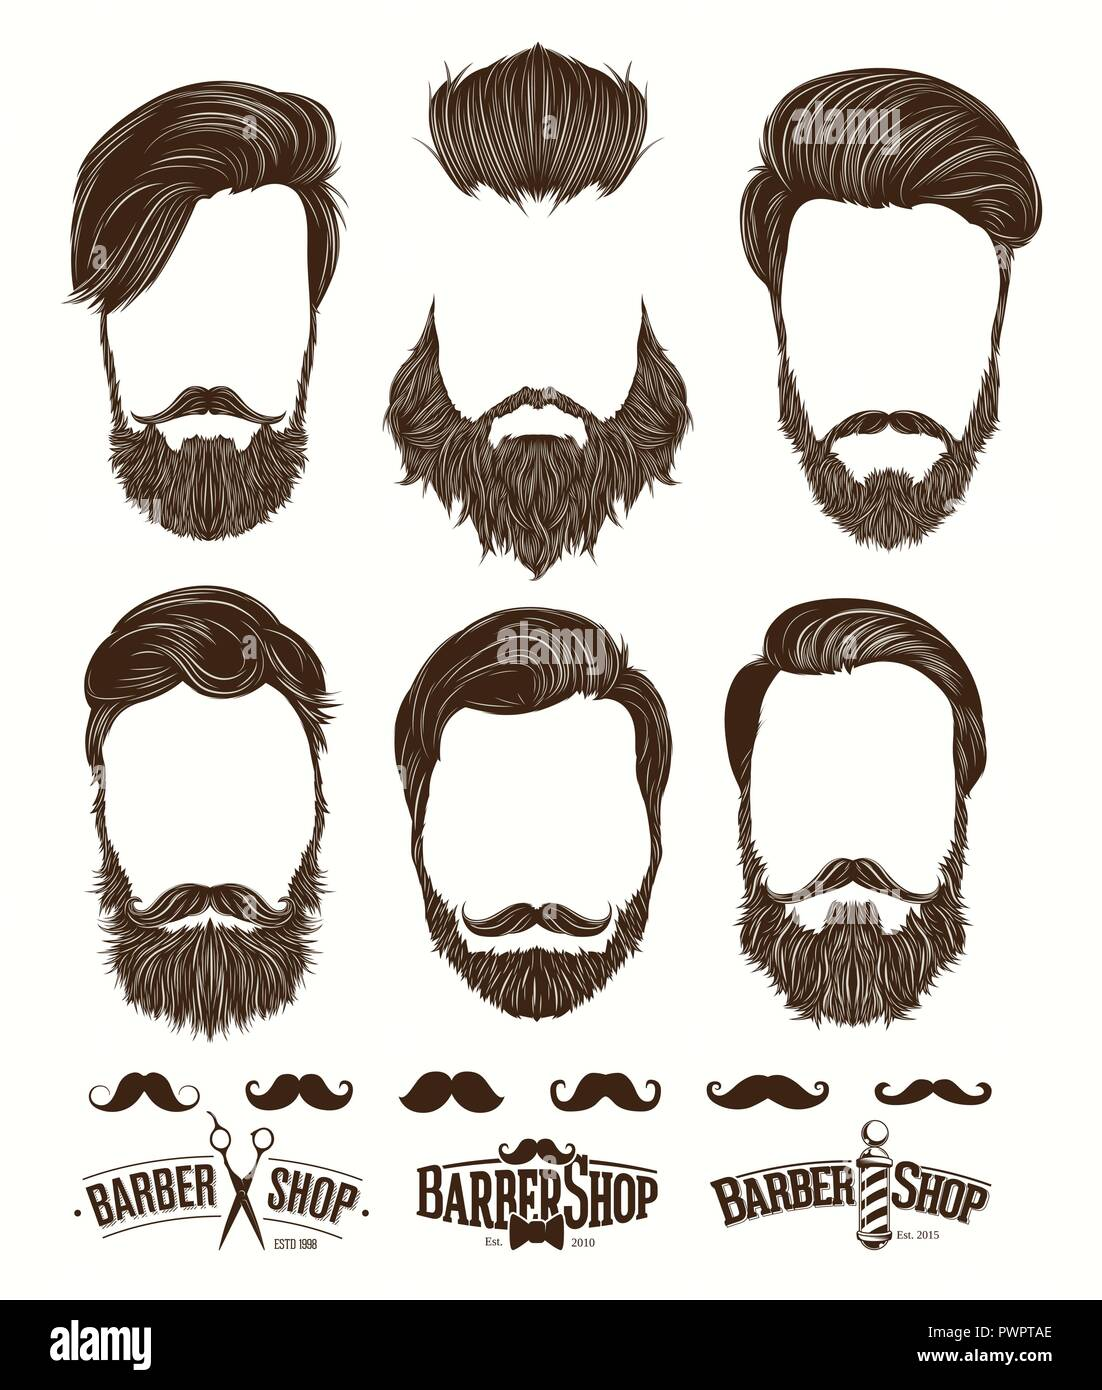 hairstyle and beard hipster fashion barbershop emblems set vector